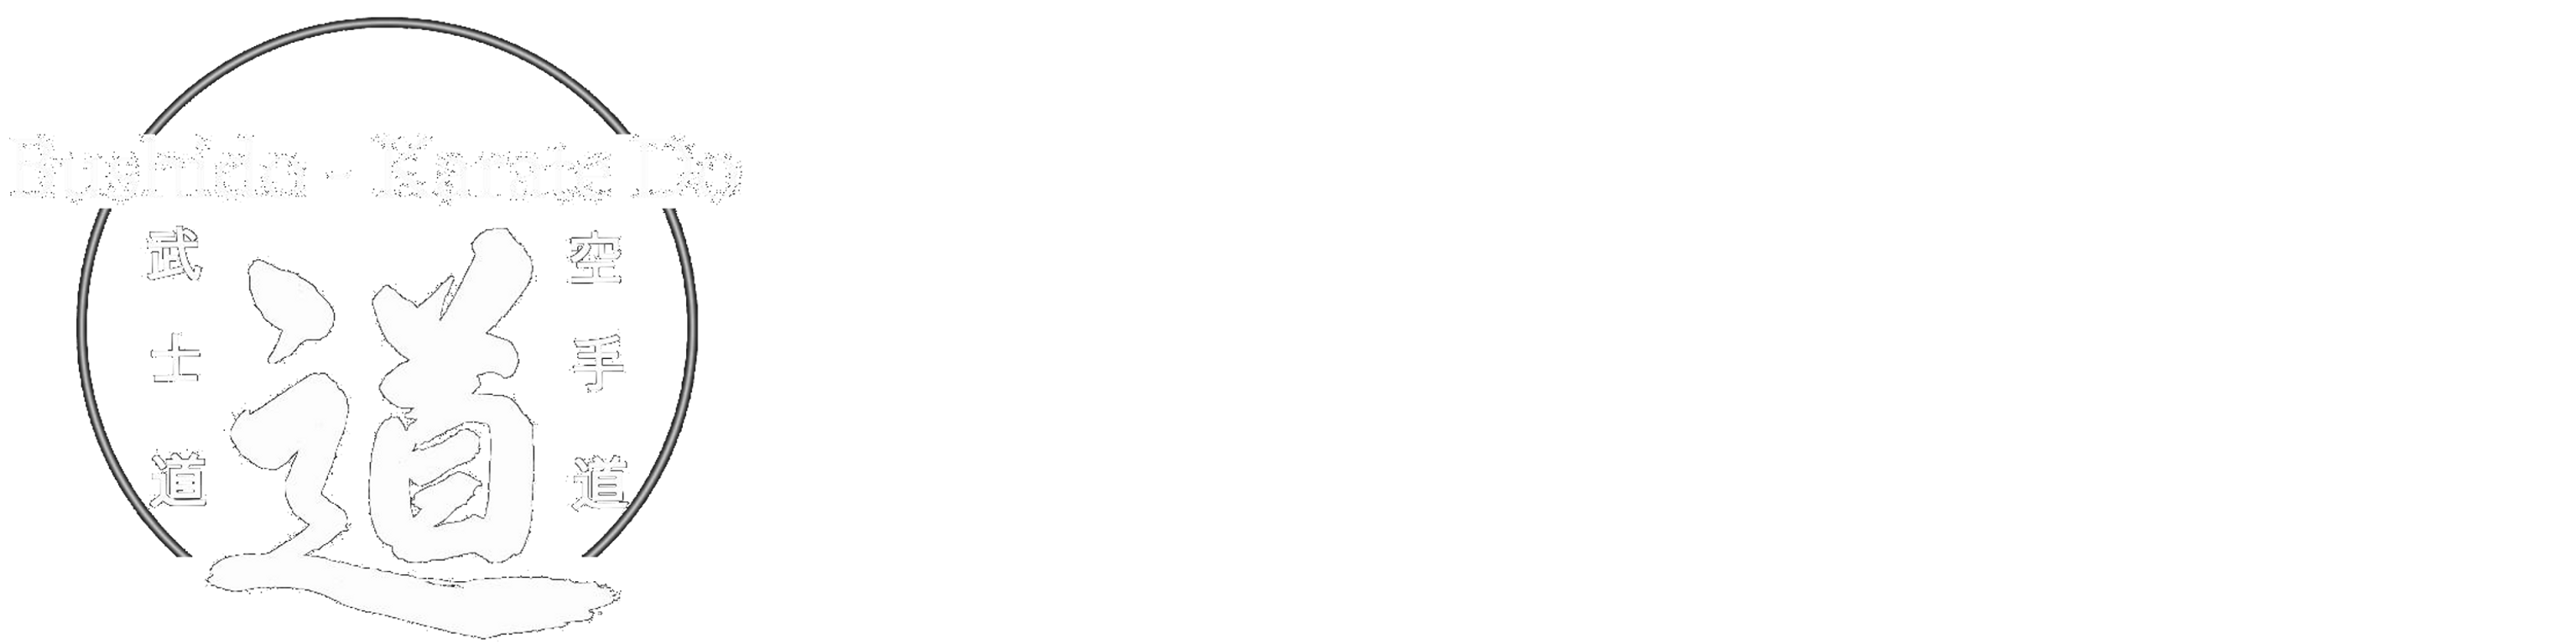 Bushido Karate-do Forlì